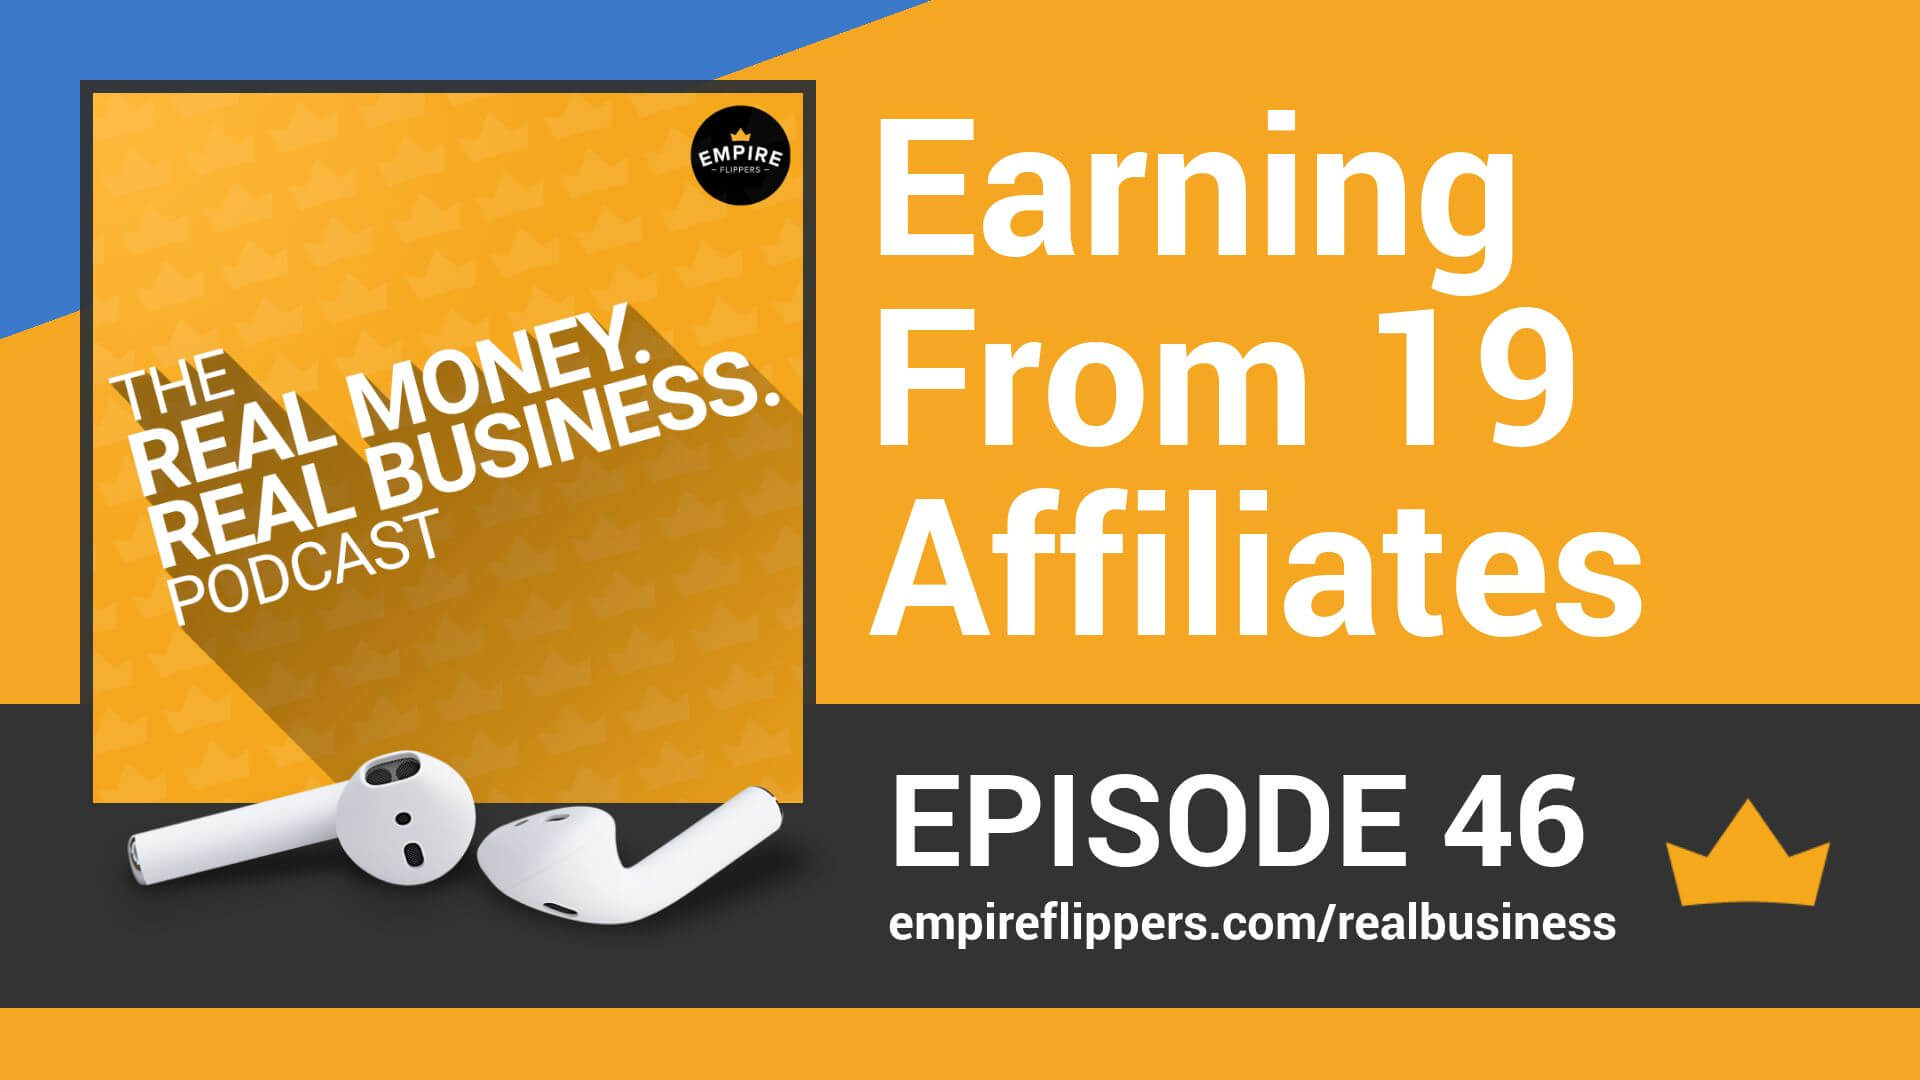 Earning From 19 Affiliates